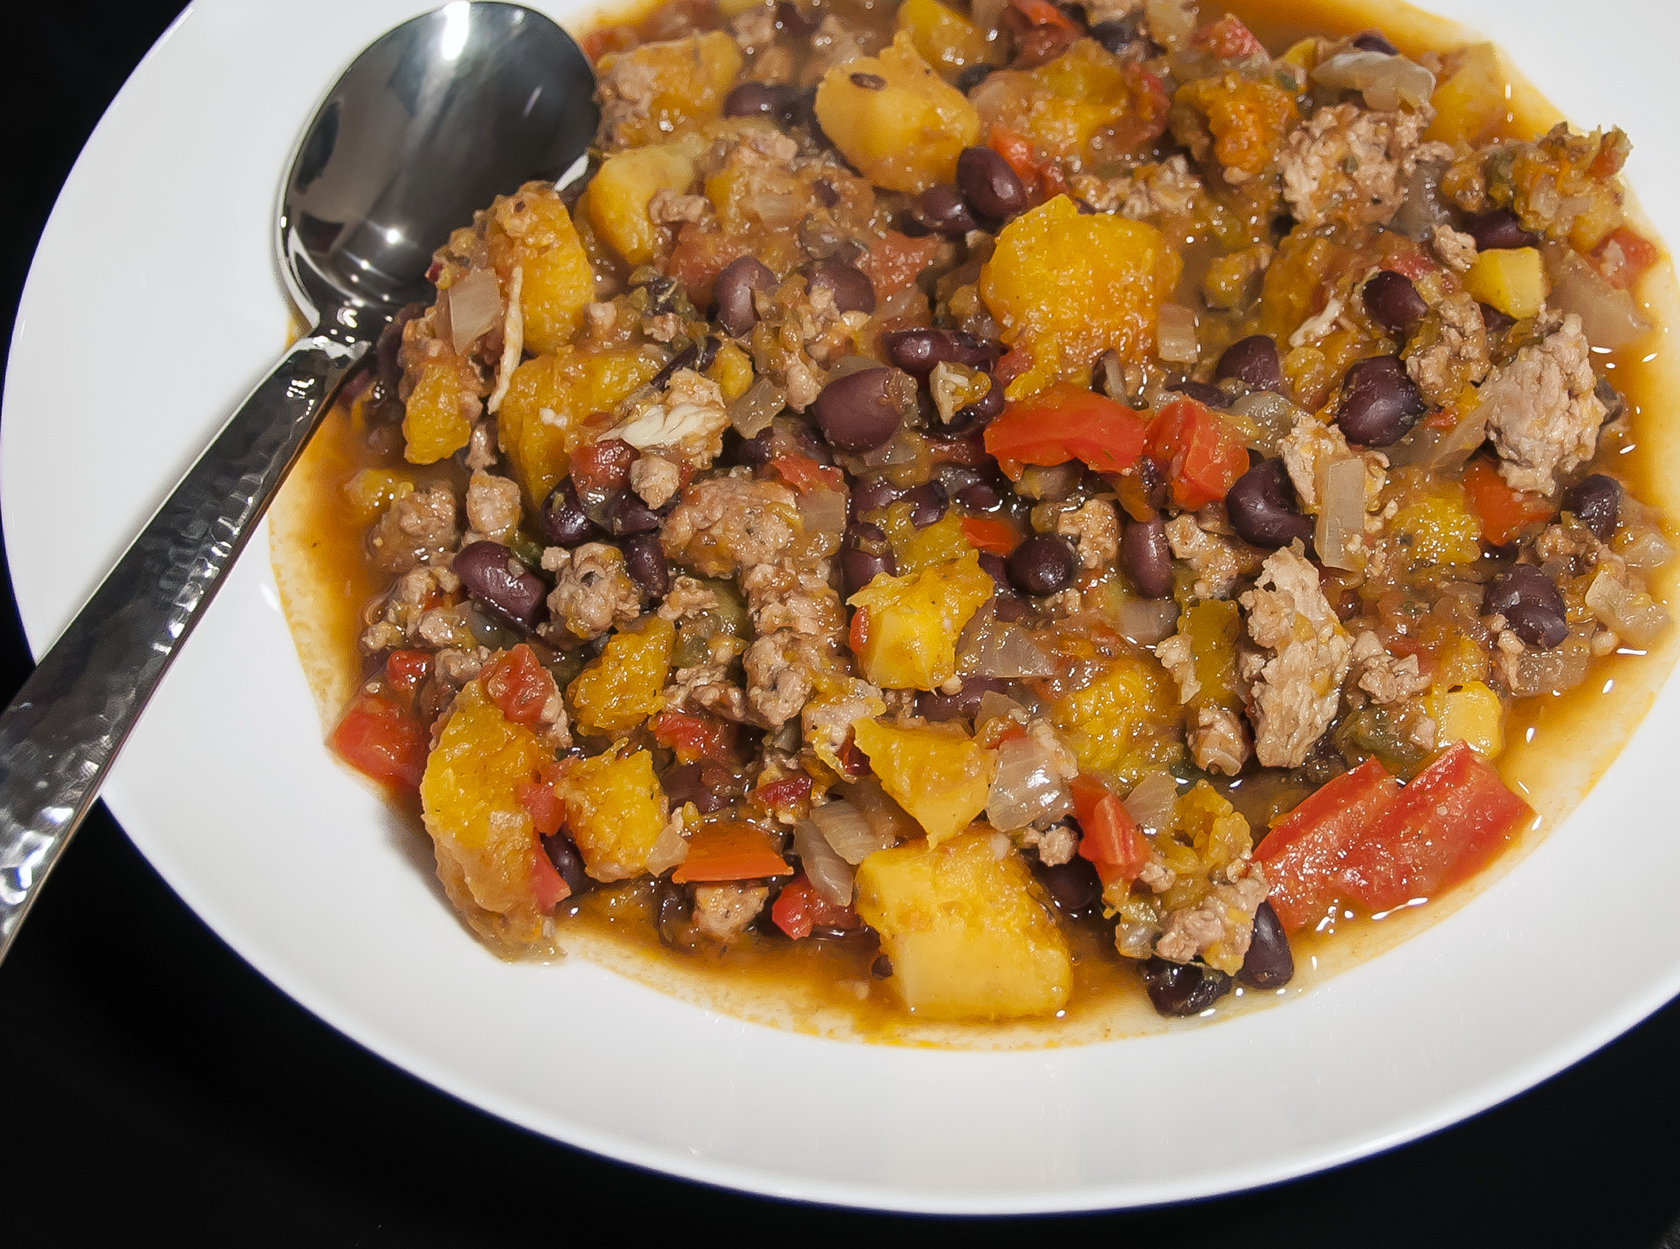 Butternut Squash and Turkey Chili (adapted from Omnomalicious )